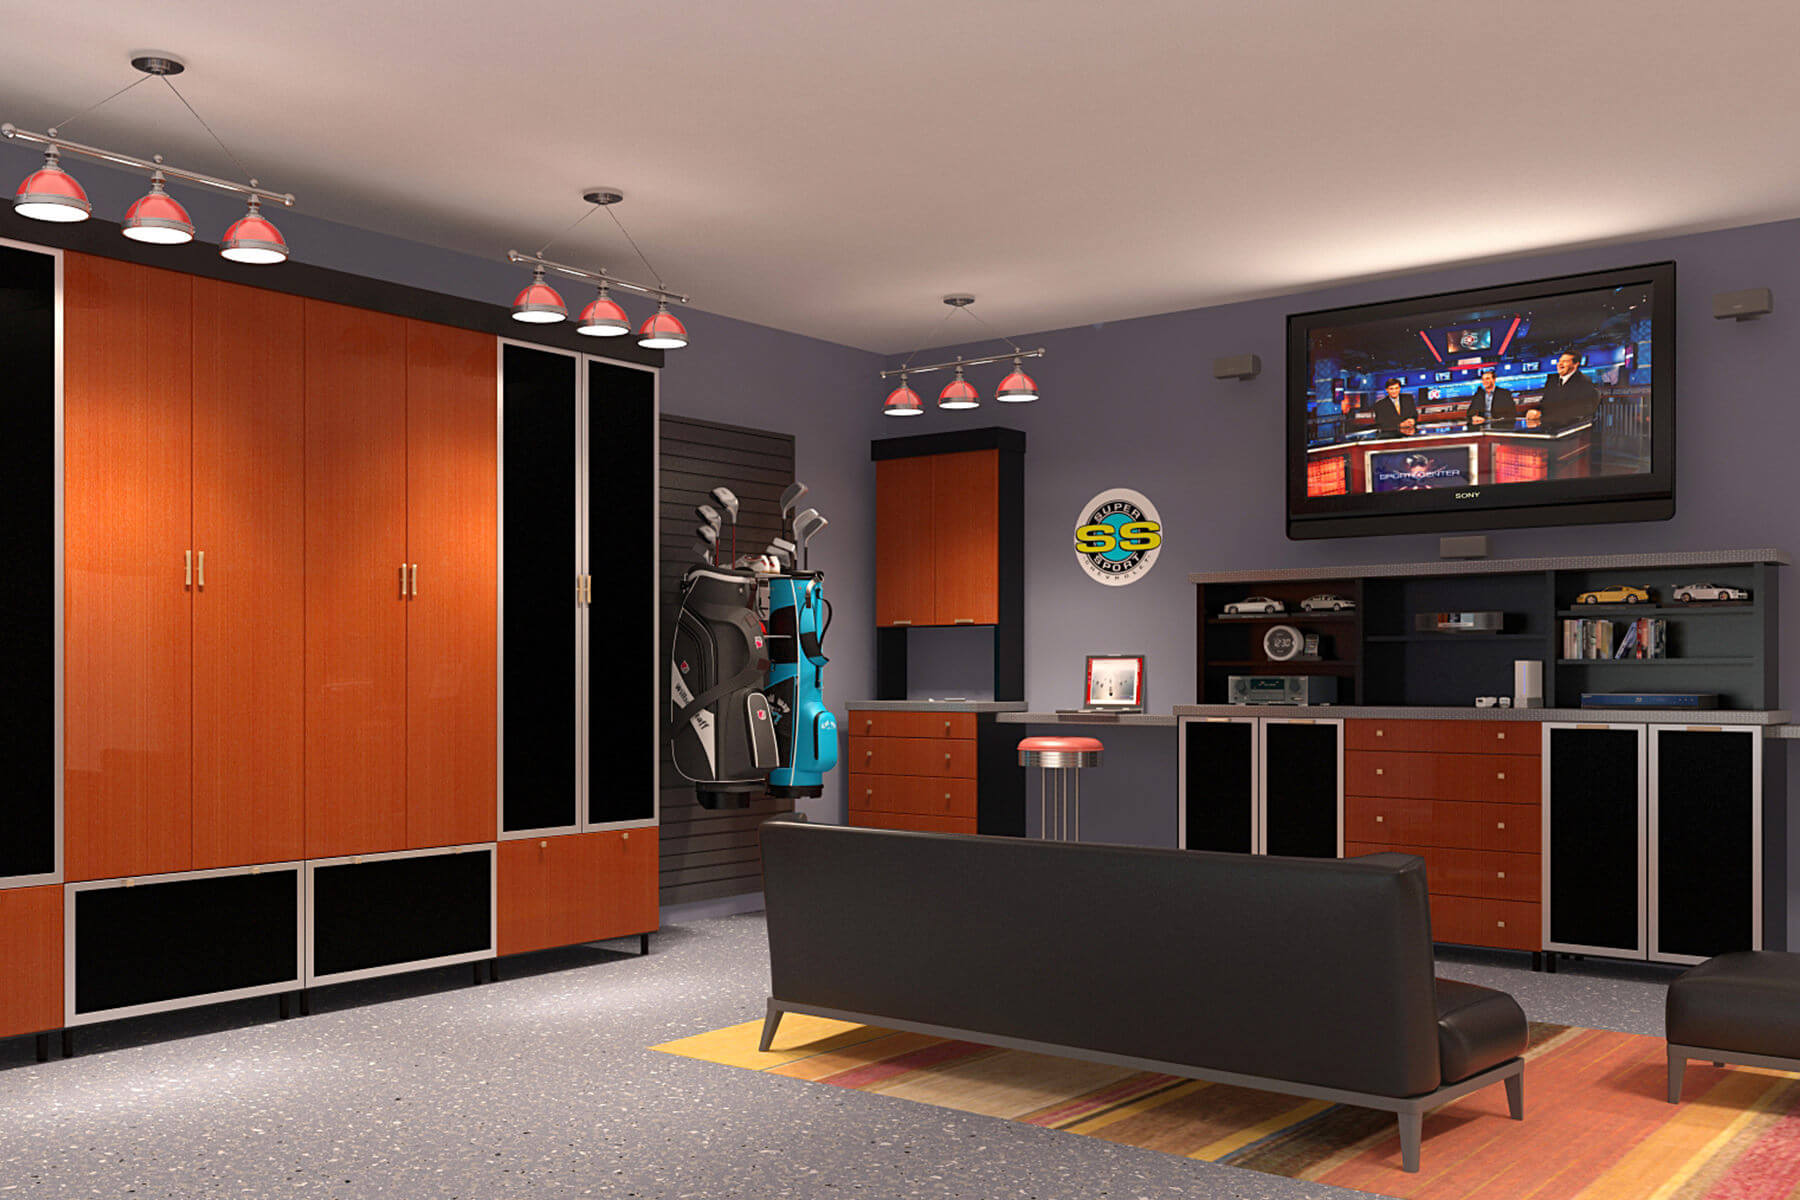 Man Cave Storage Cabinets : Garage storage ideas plus man caves